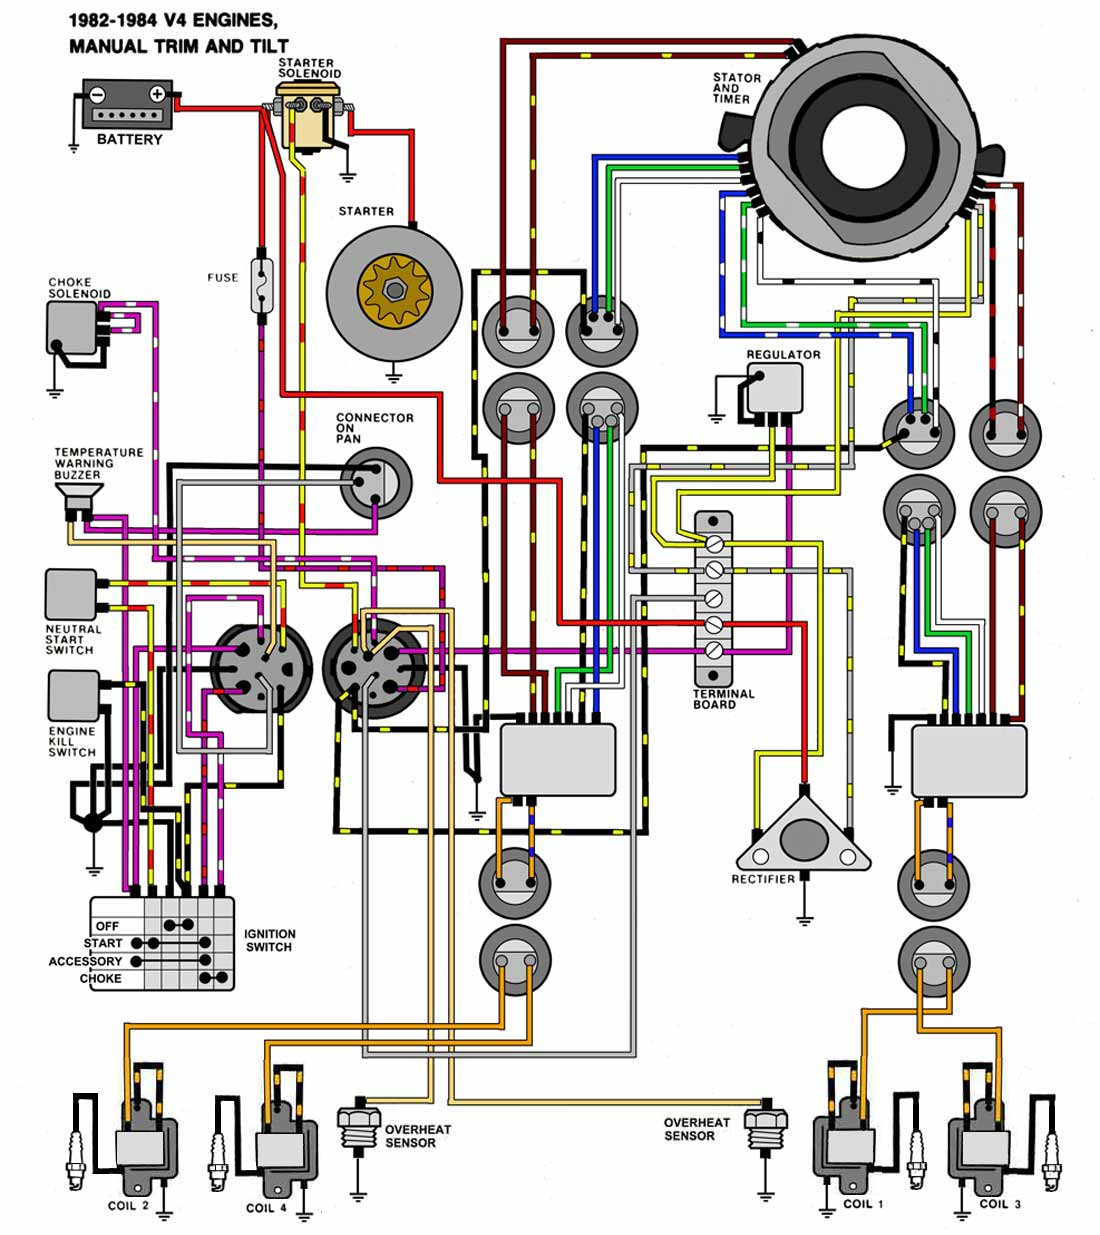 82_84_V4_NOTNT mastertech marine evinrude johnson outboard wiring diagrams 70 HP Evinrude Schematic at gsmx.co